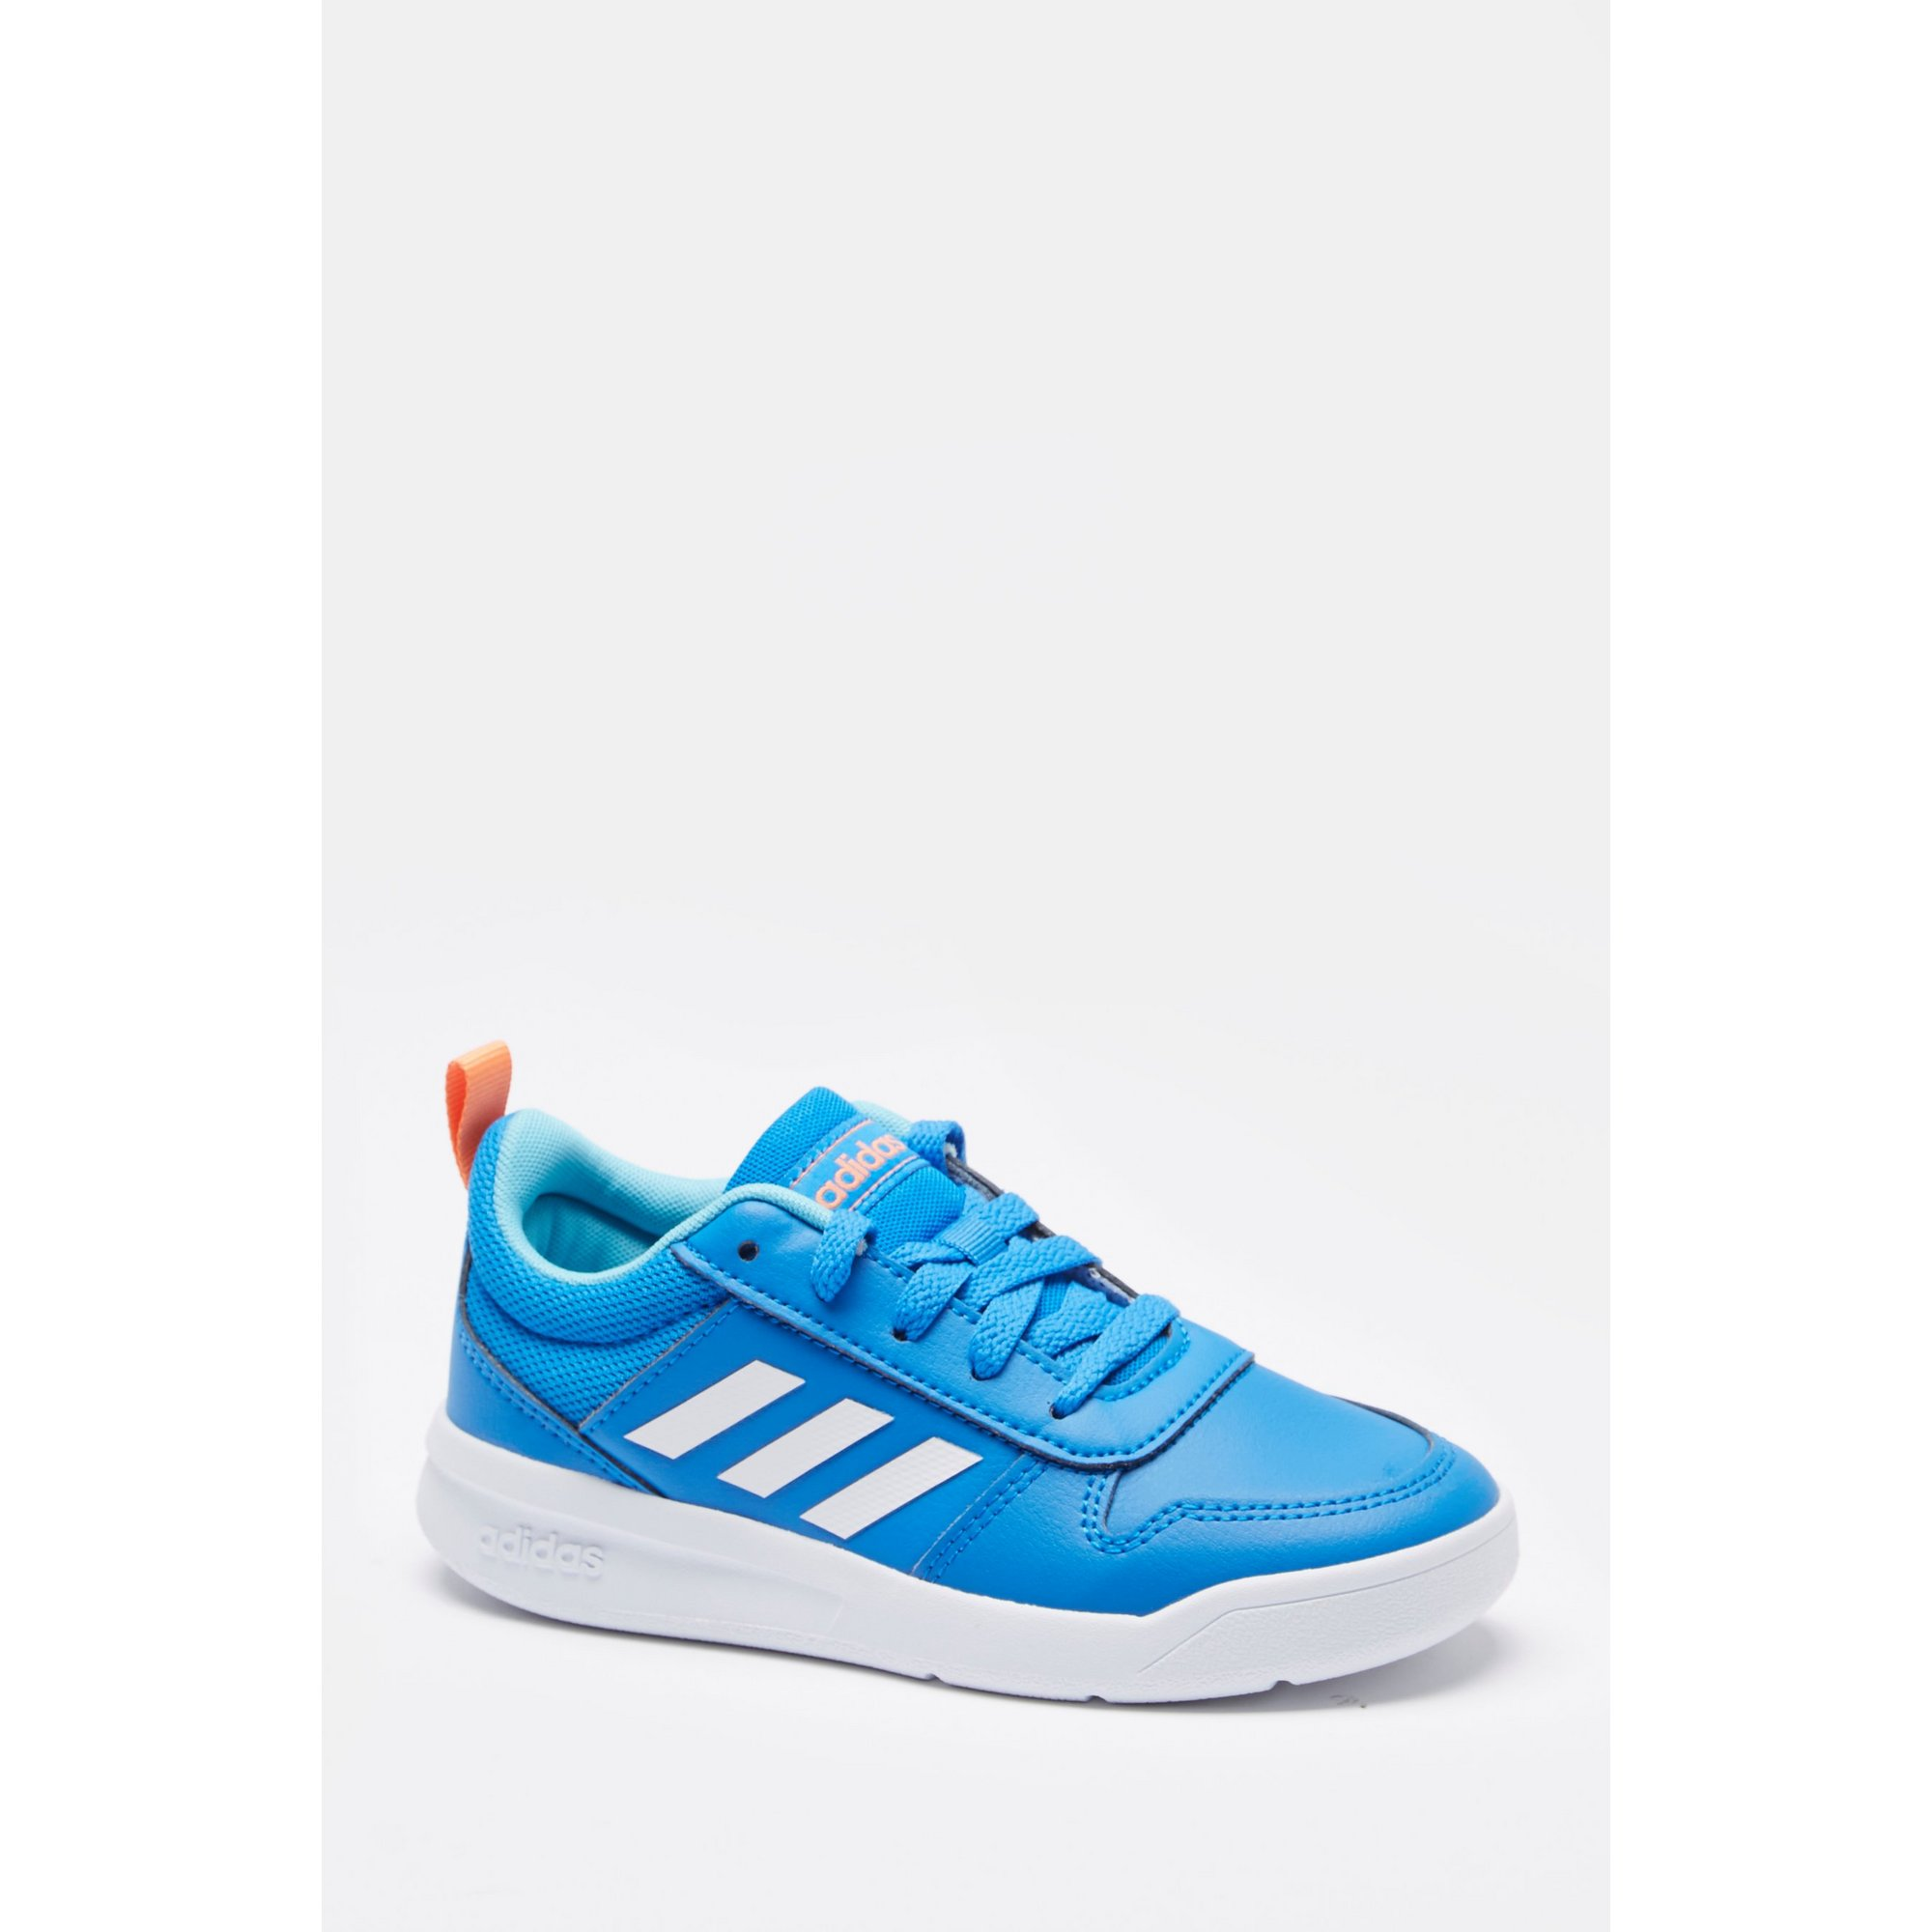 Image of adidas Blue Tenasaur K Trainers